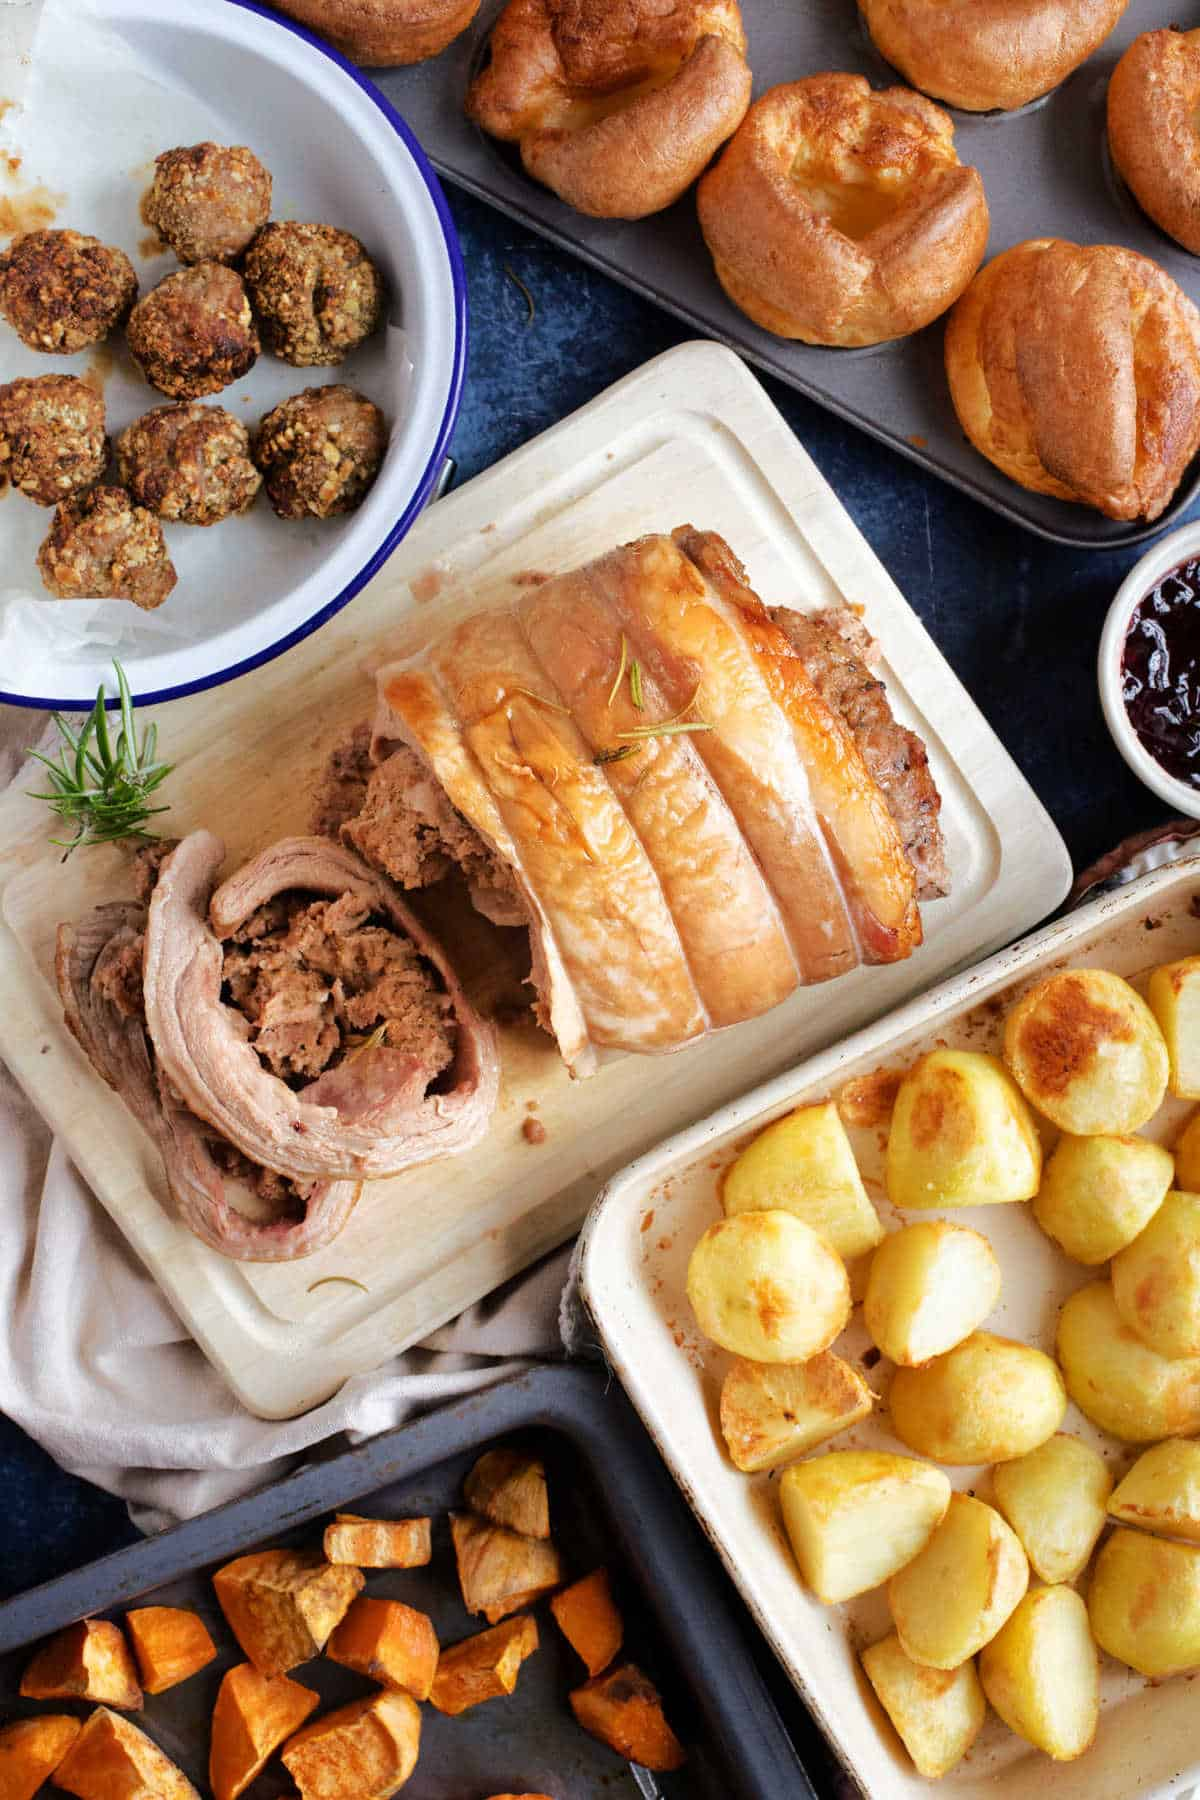 Slow cooker breast of lamb with Yorkshire puddings, potatoes and stuffing.